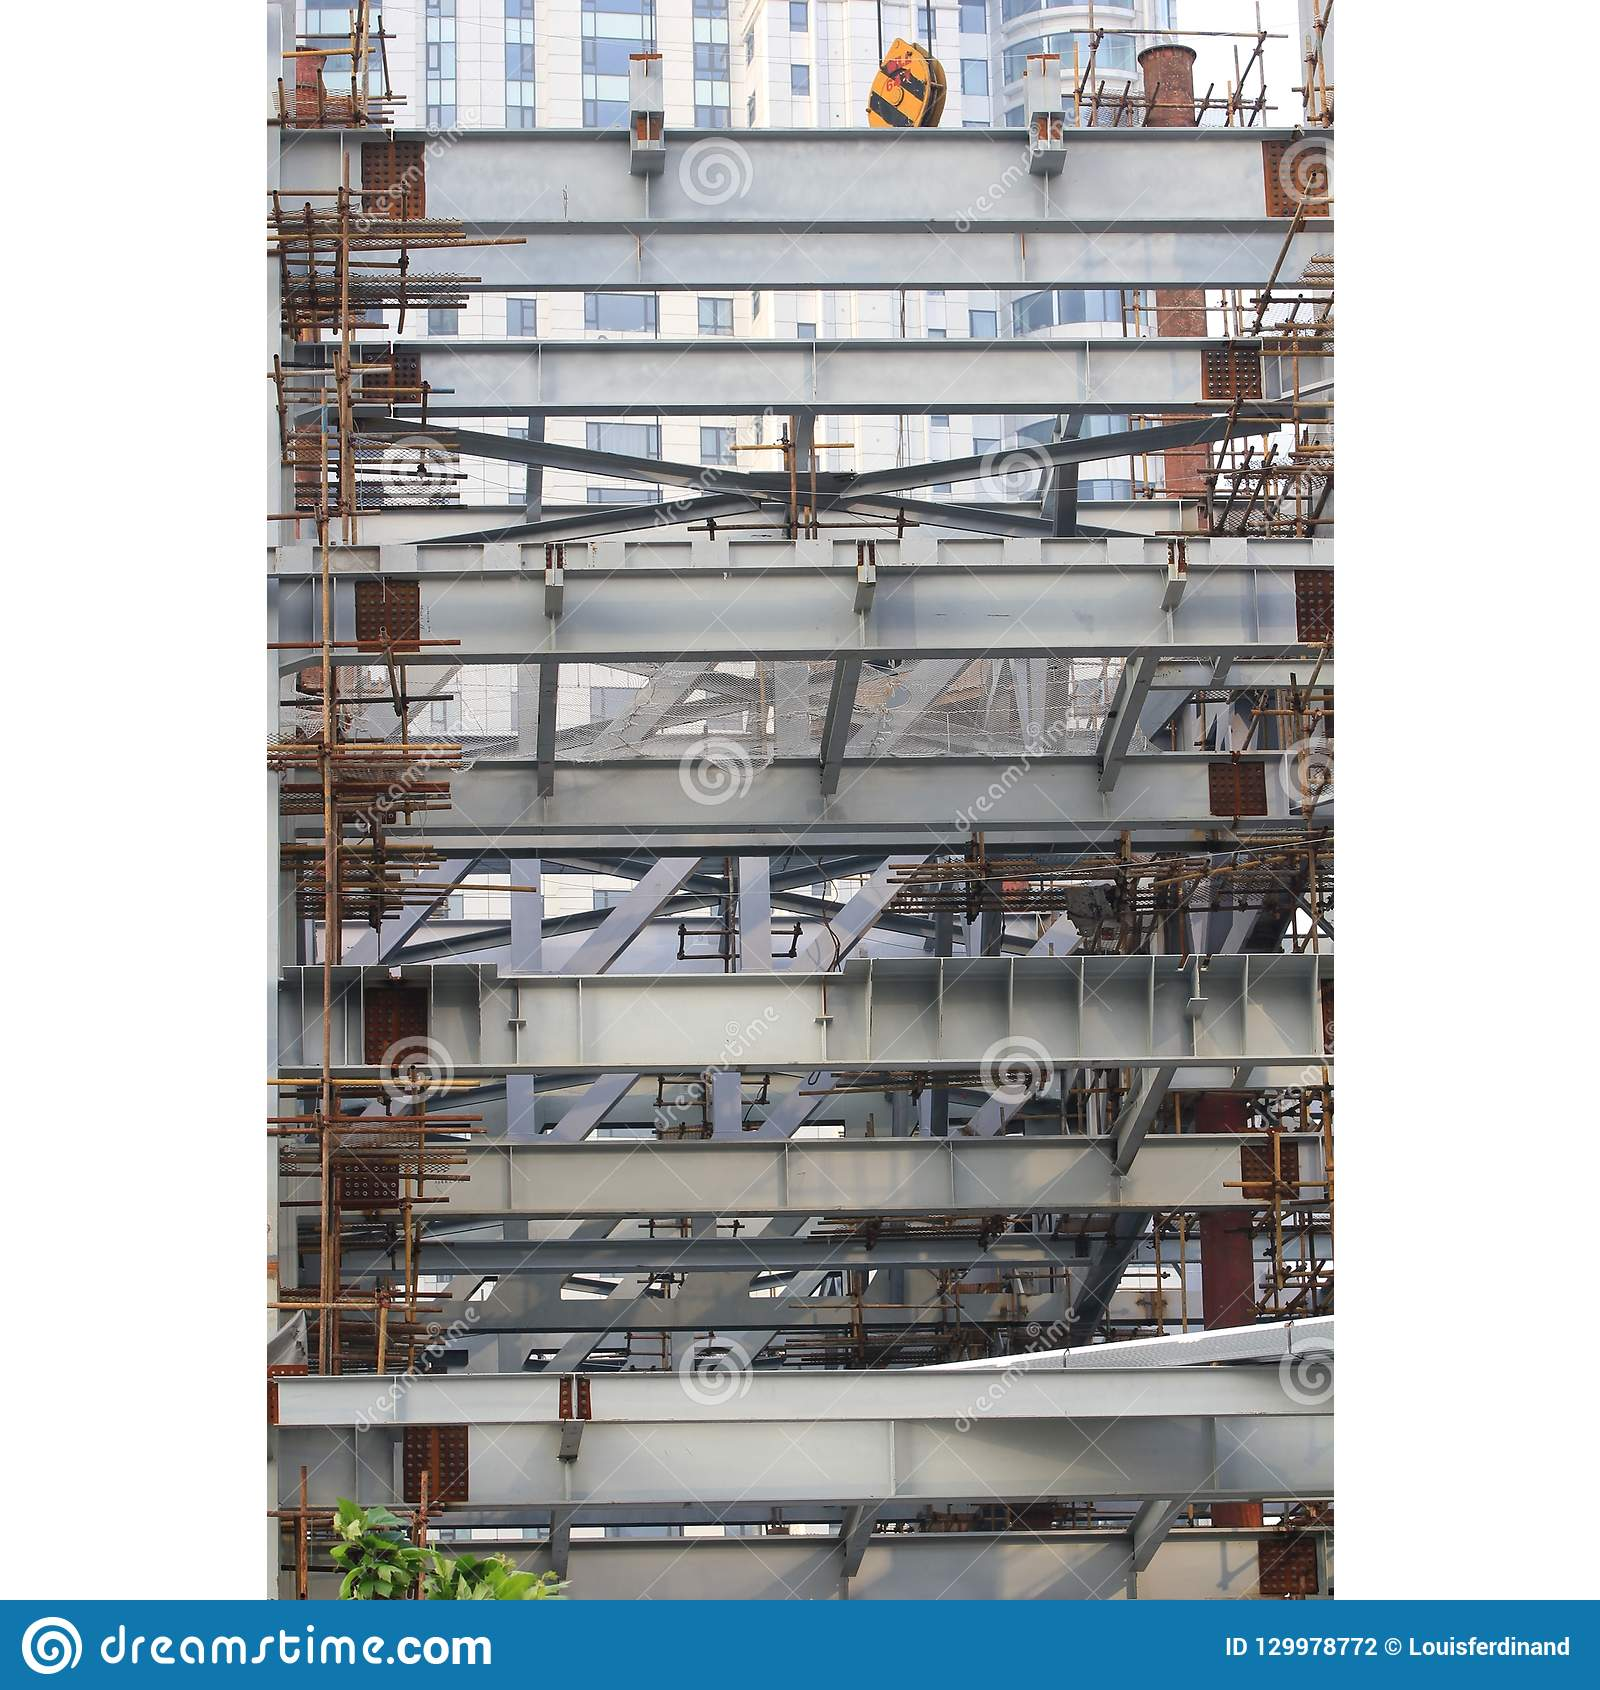 Steel beams and bamboos scaffolds in fast growing Shanghai, aftermath of economic booming